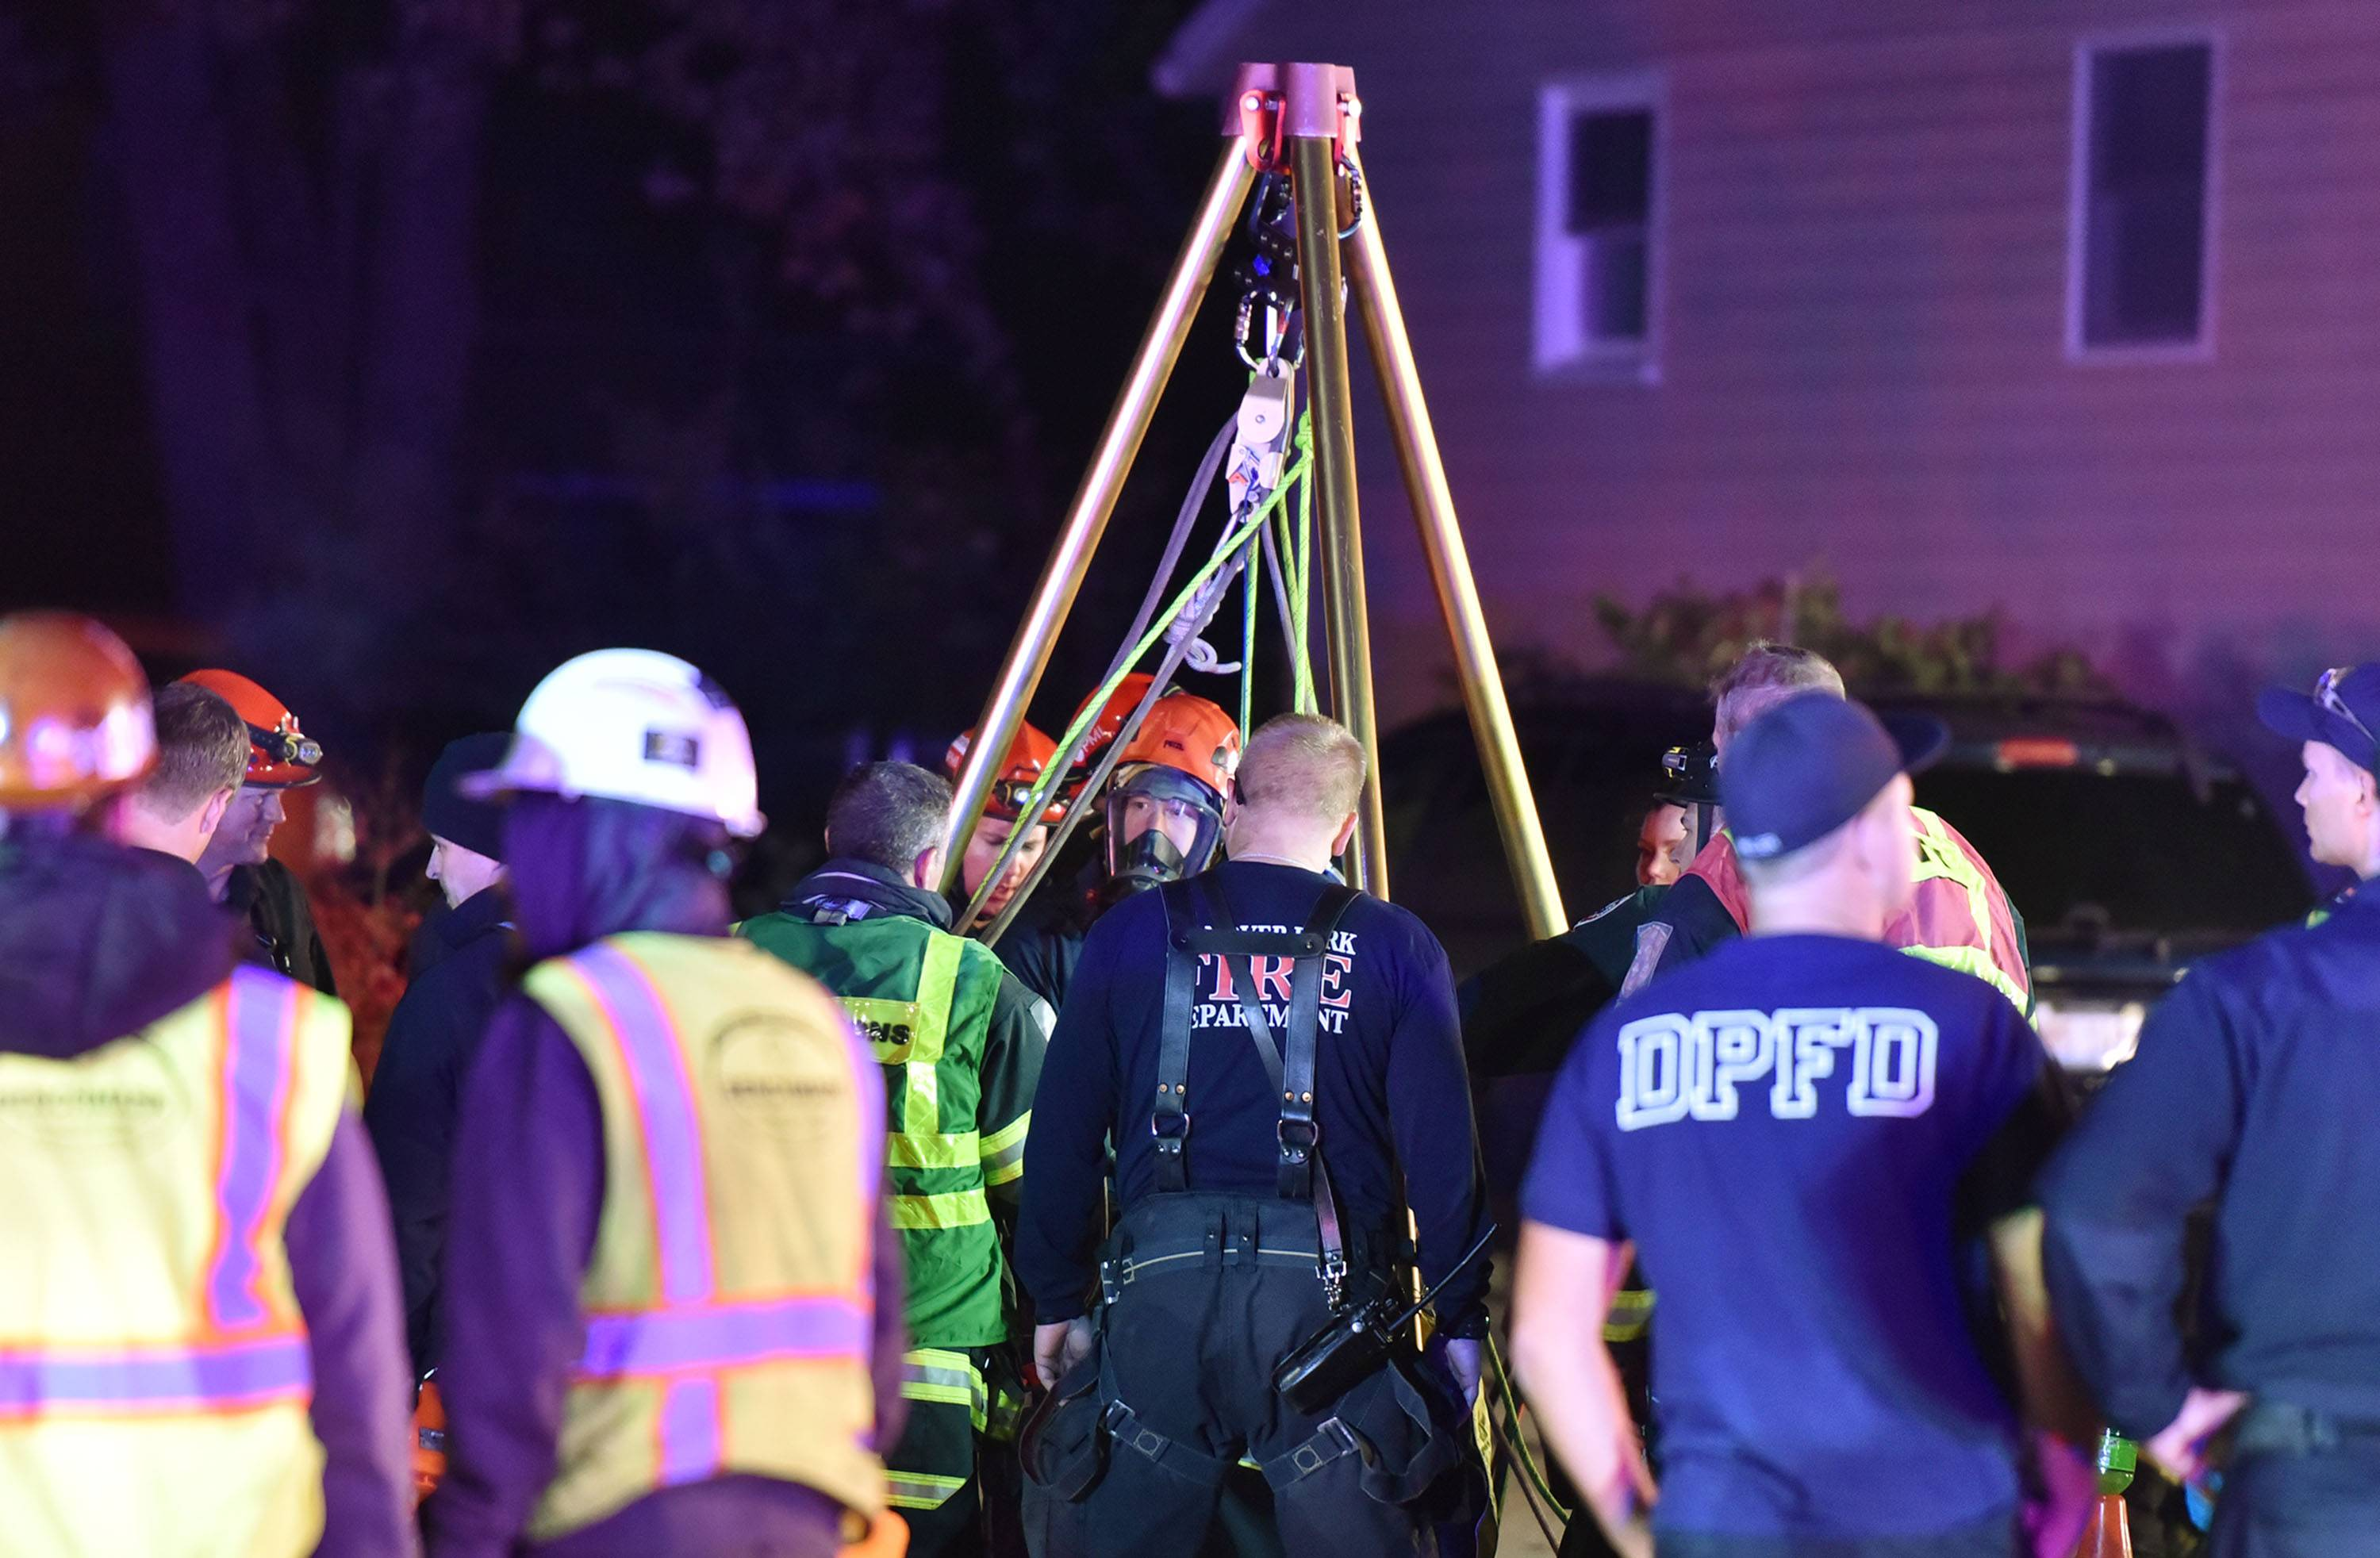 Emergency crews use a tripod to lower a rescue worker into a sewer line during the rescue effort on South Park Boulevard in Streamwood Wednesday night.